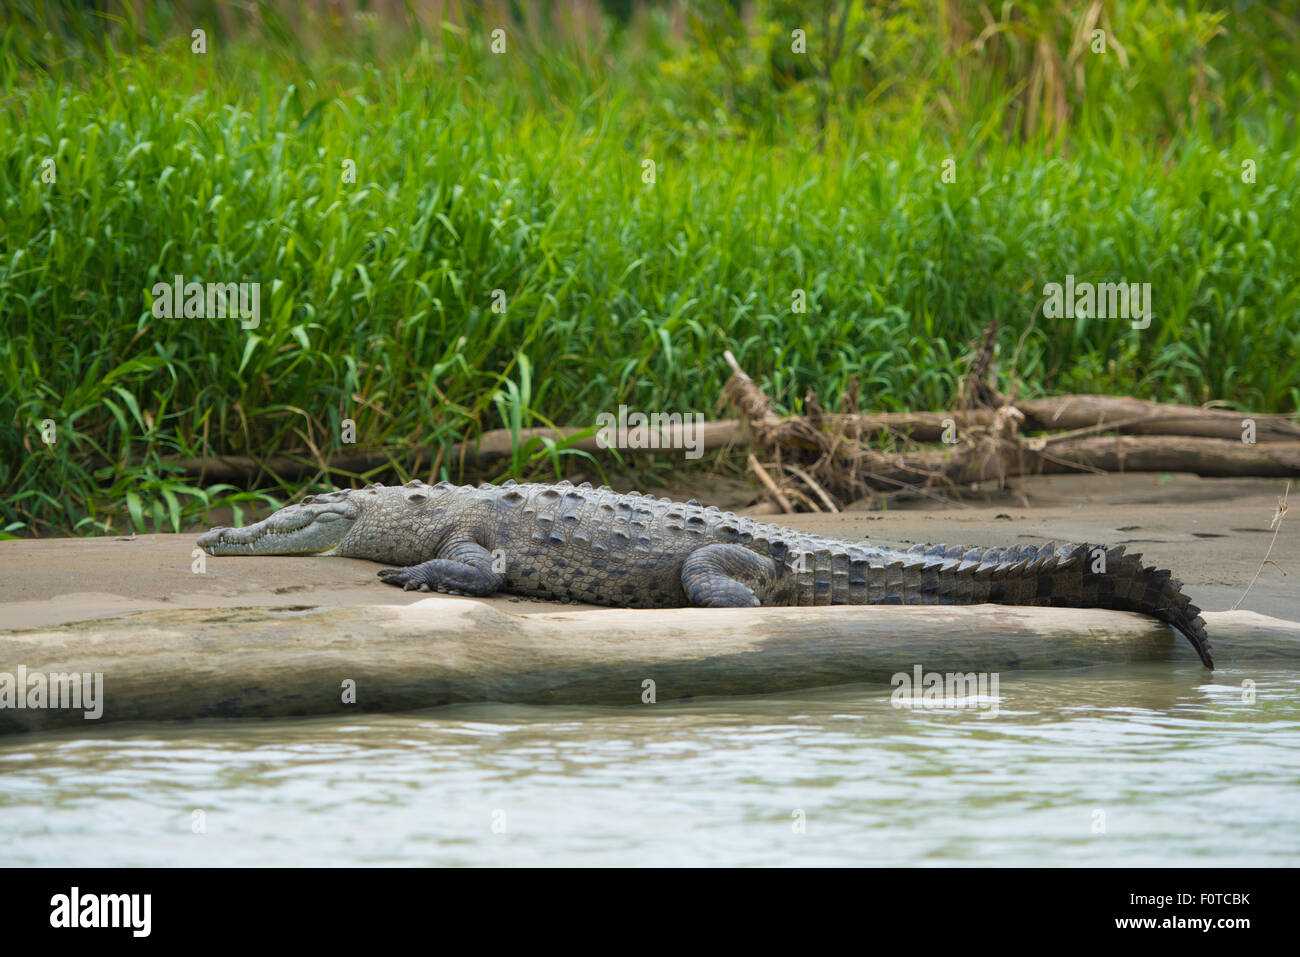 Crocodile or crocodylidae lying down on a bank of a river in Costa Rica. - Stock Image